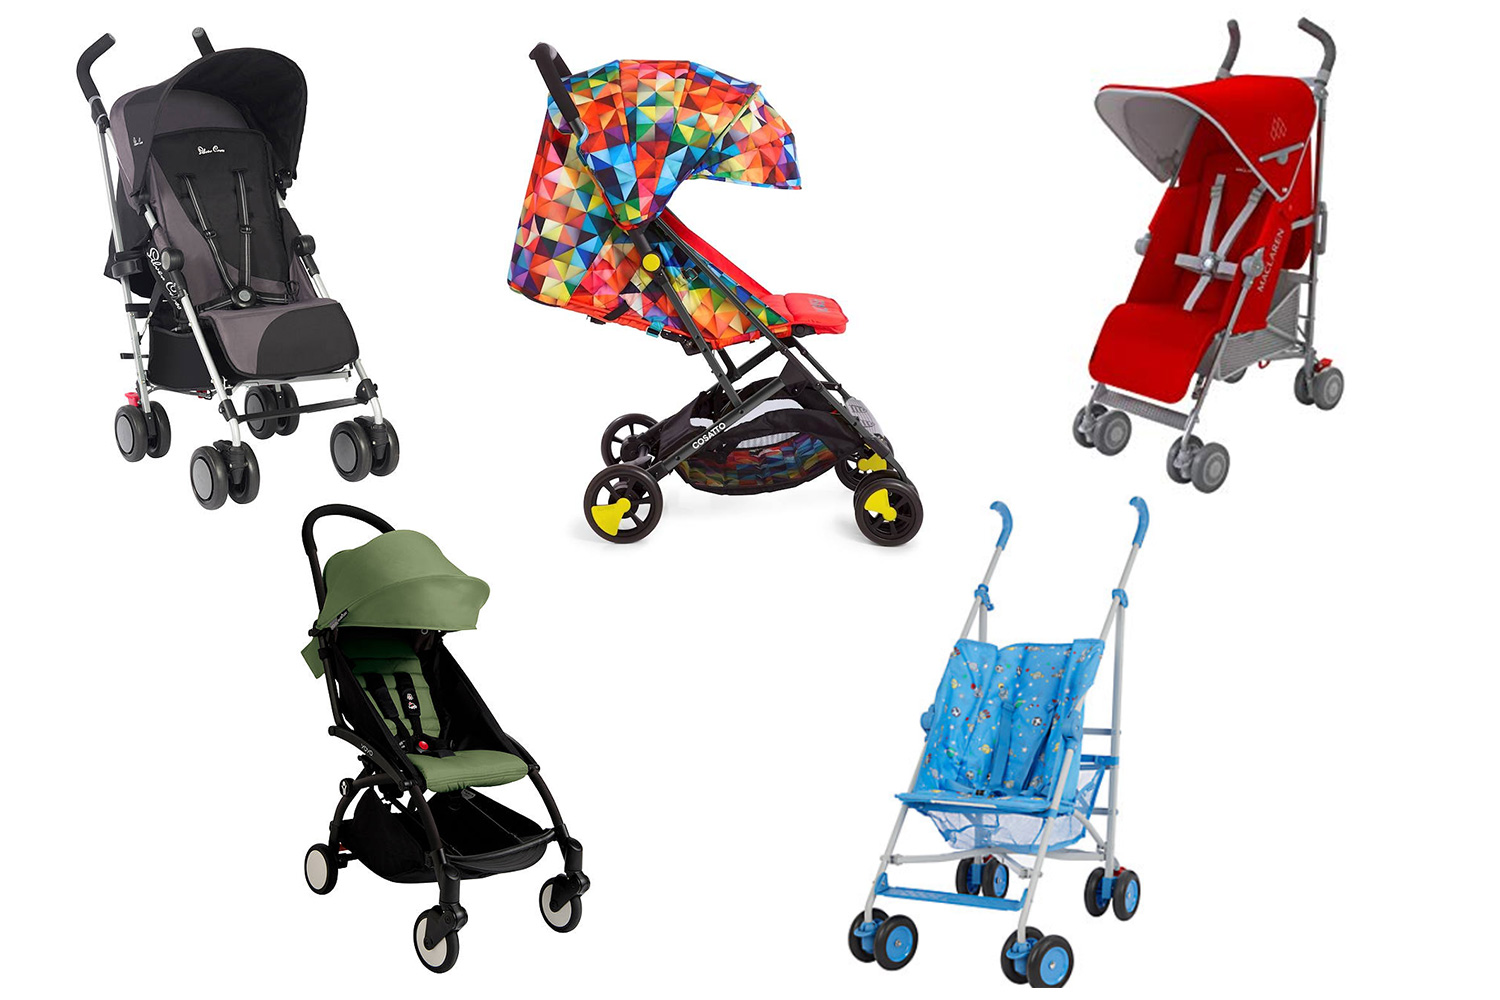 Maclaren Stroller Uk Reviews Best Umbrella Strollers 2019 The Sun Uk